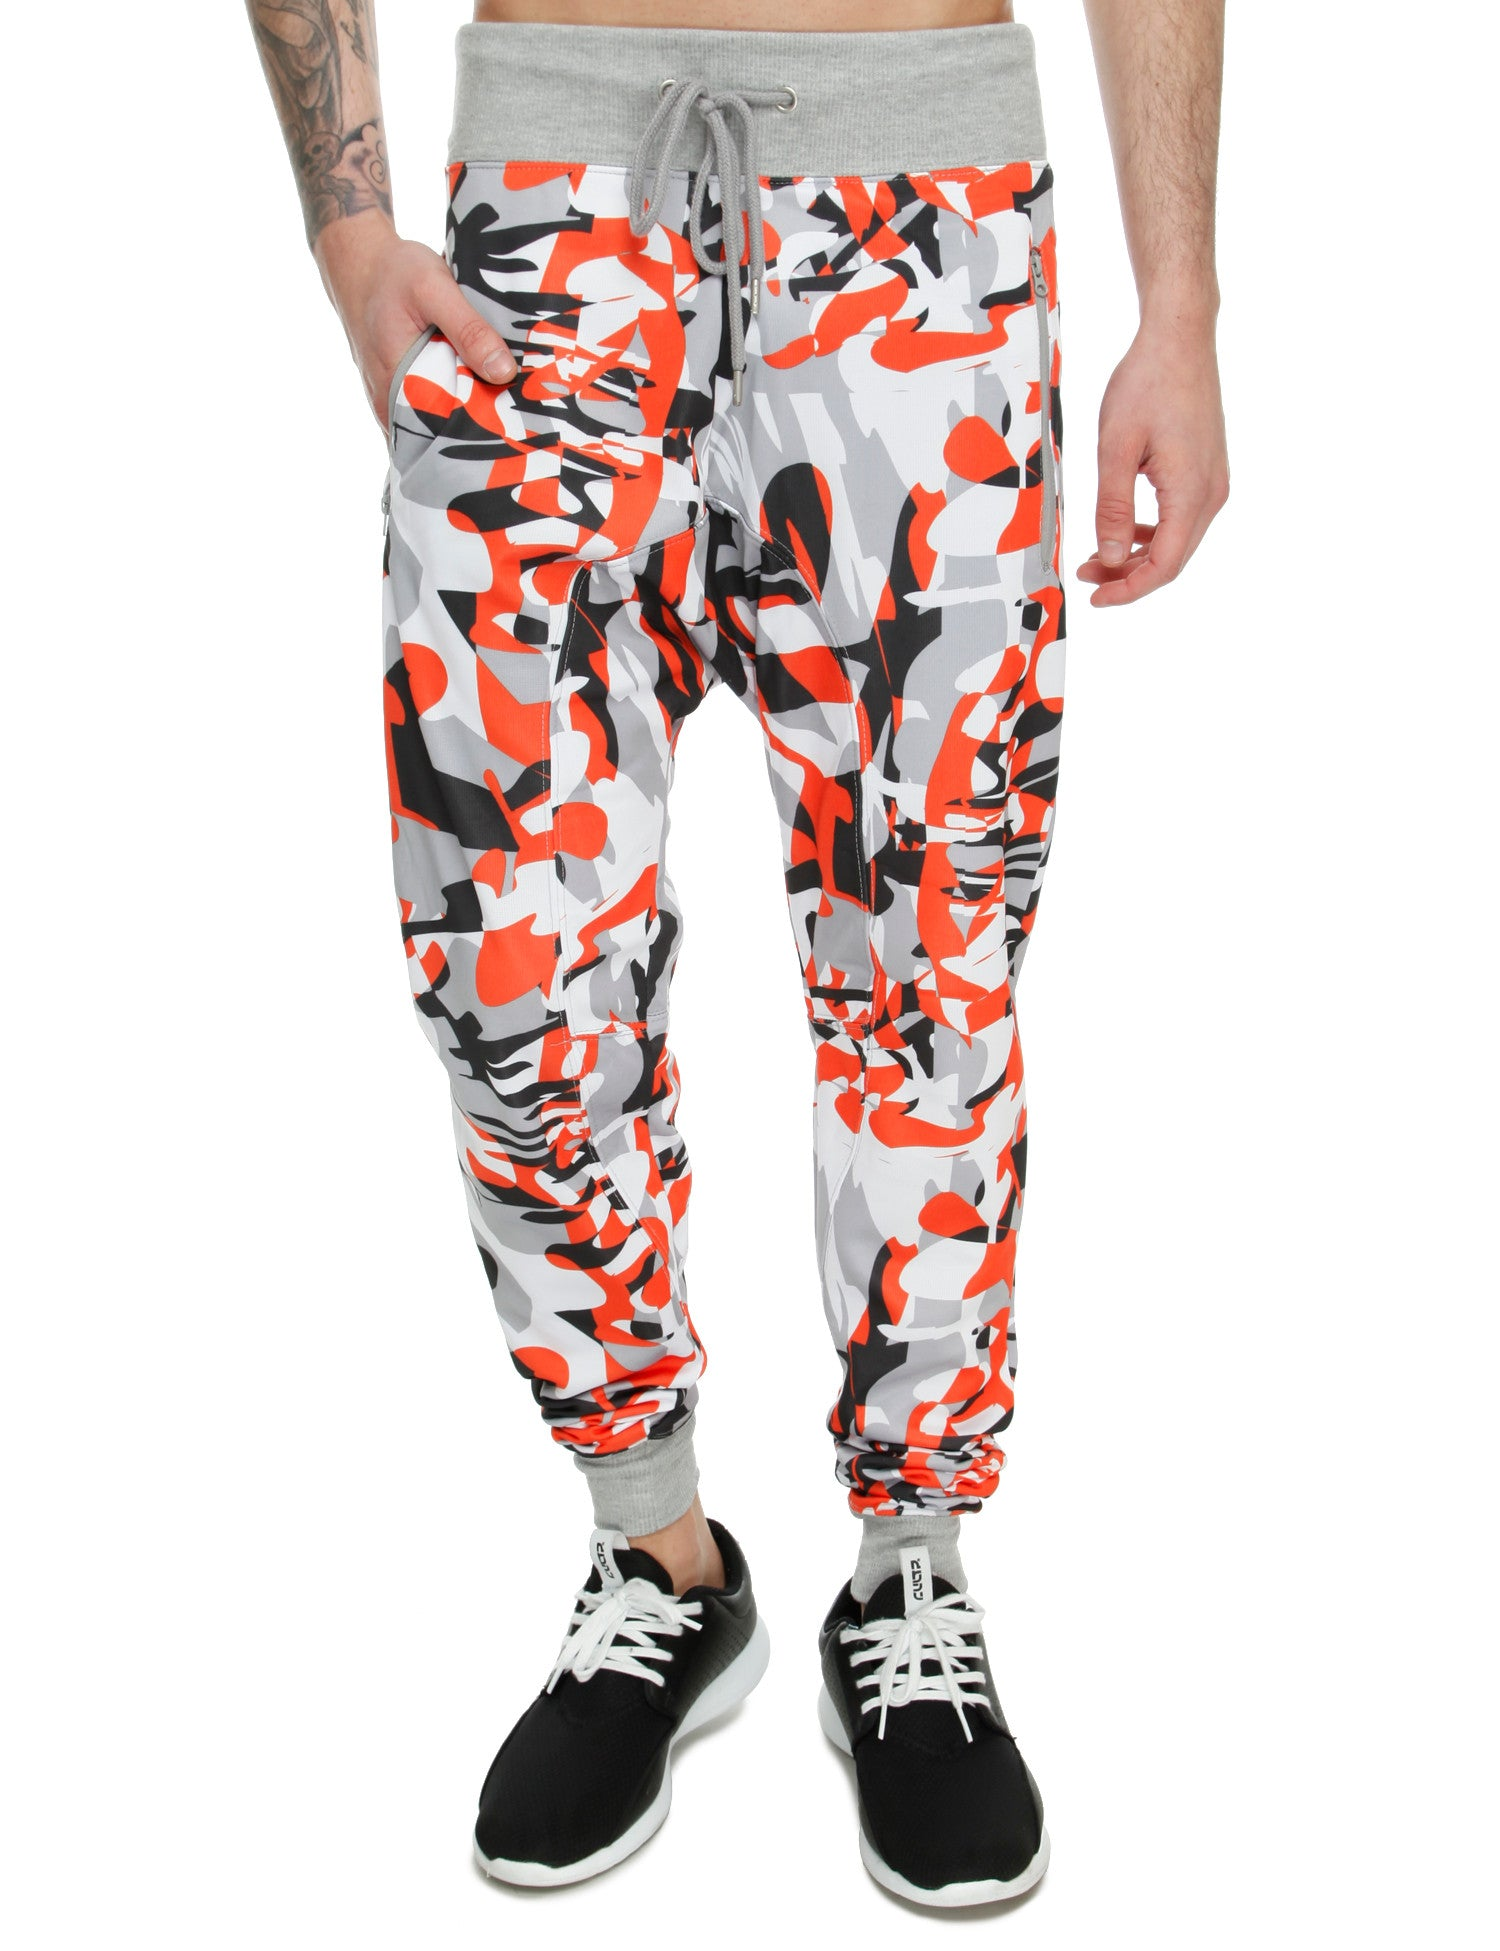 Royal Blue Print Sweatpant 27020P Orange